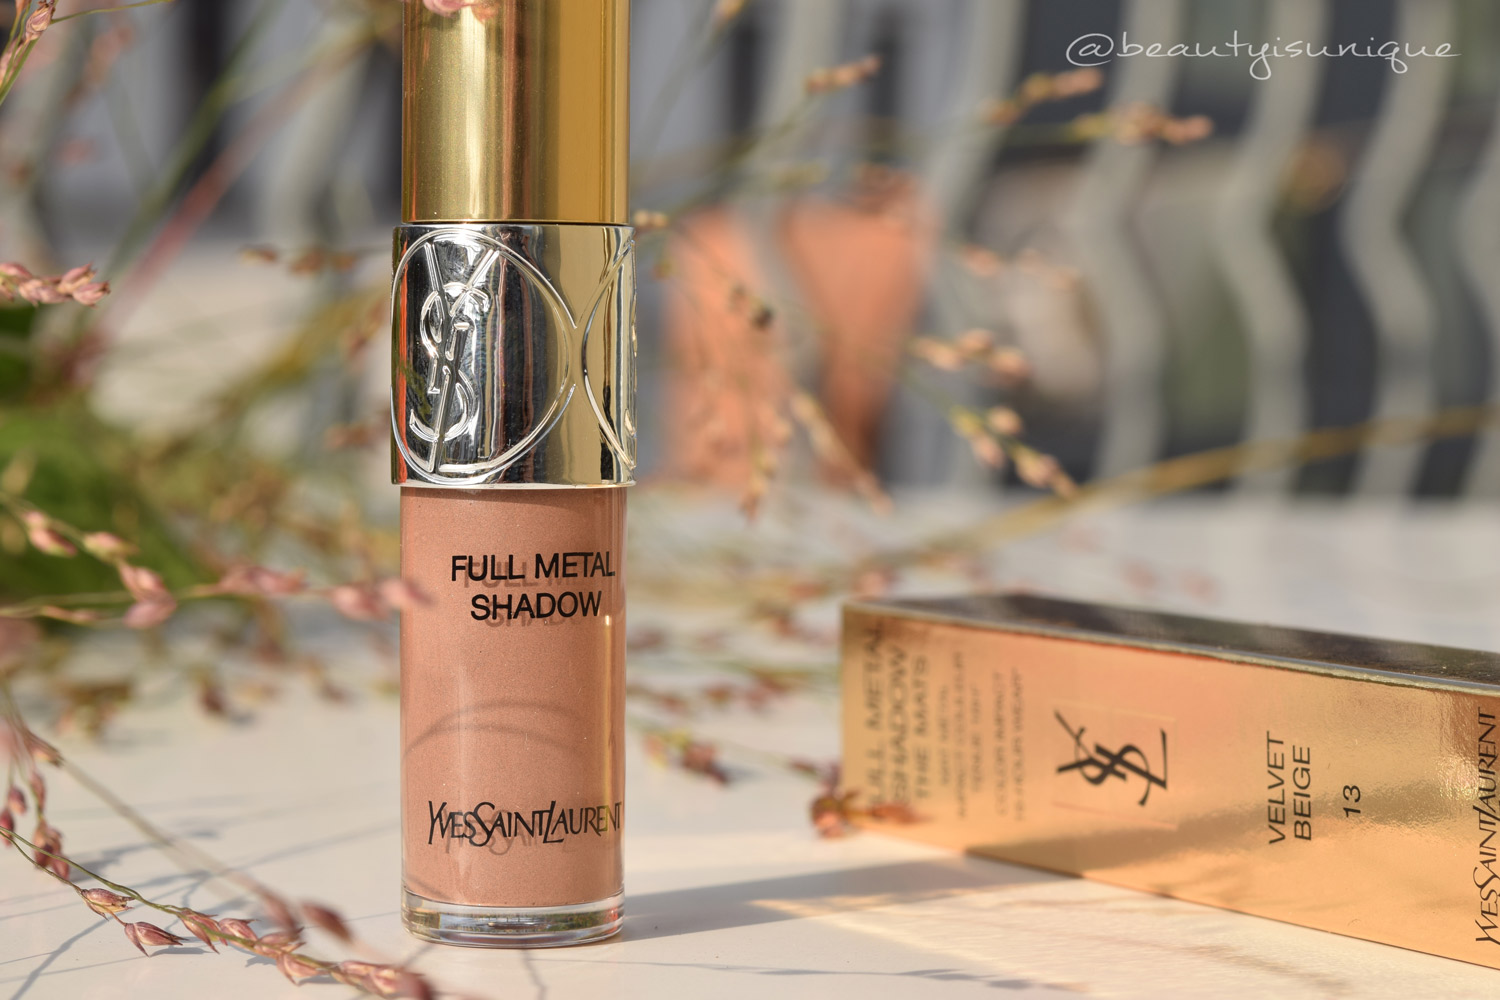 ysl-full-metal-shadow-13-velvet-beige